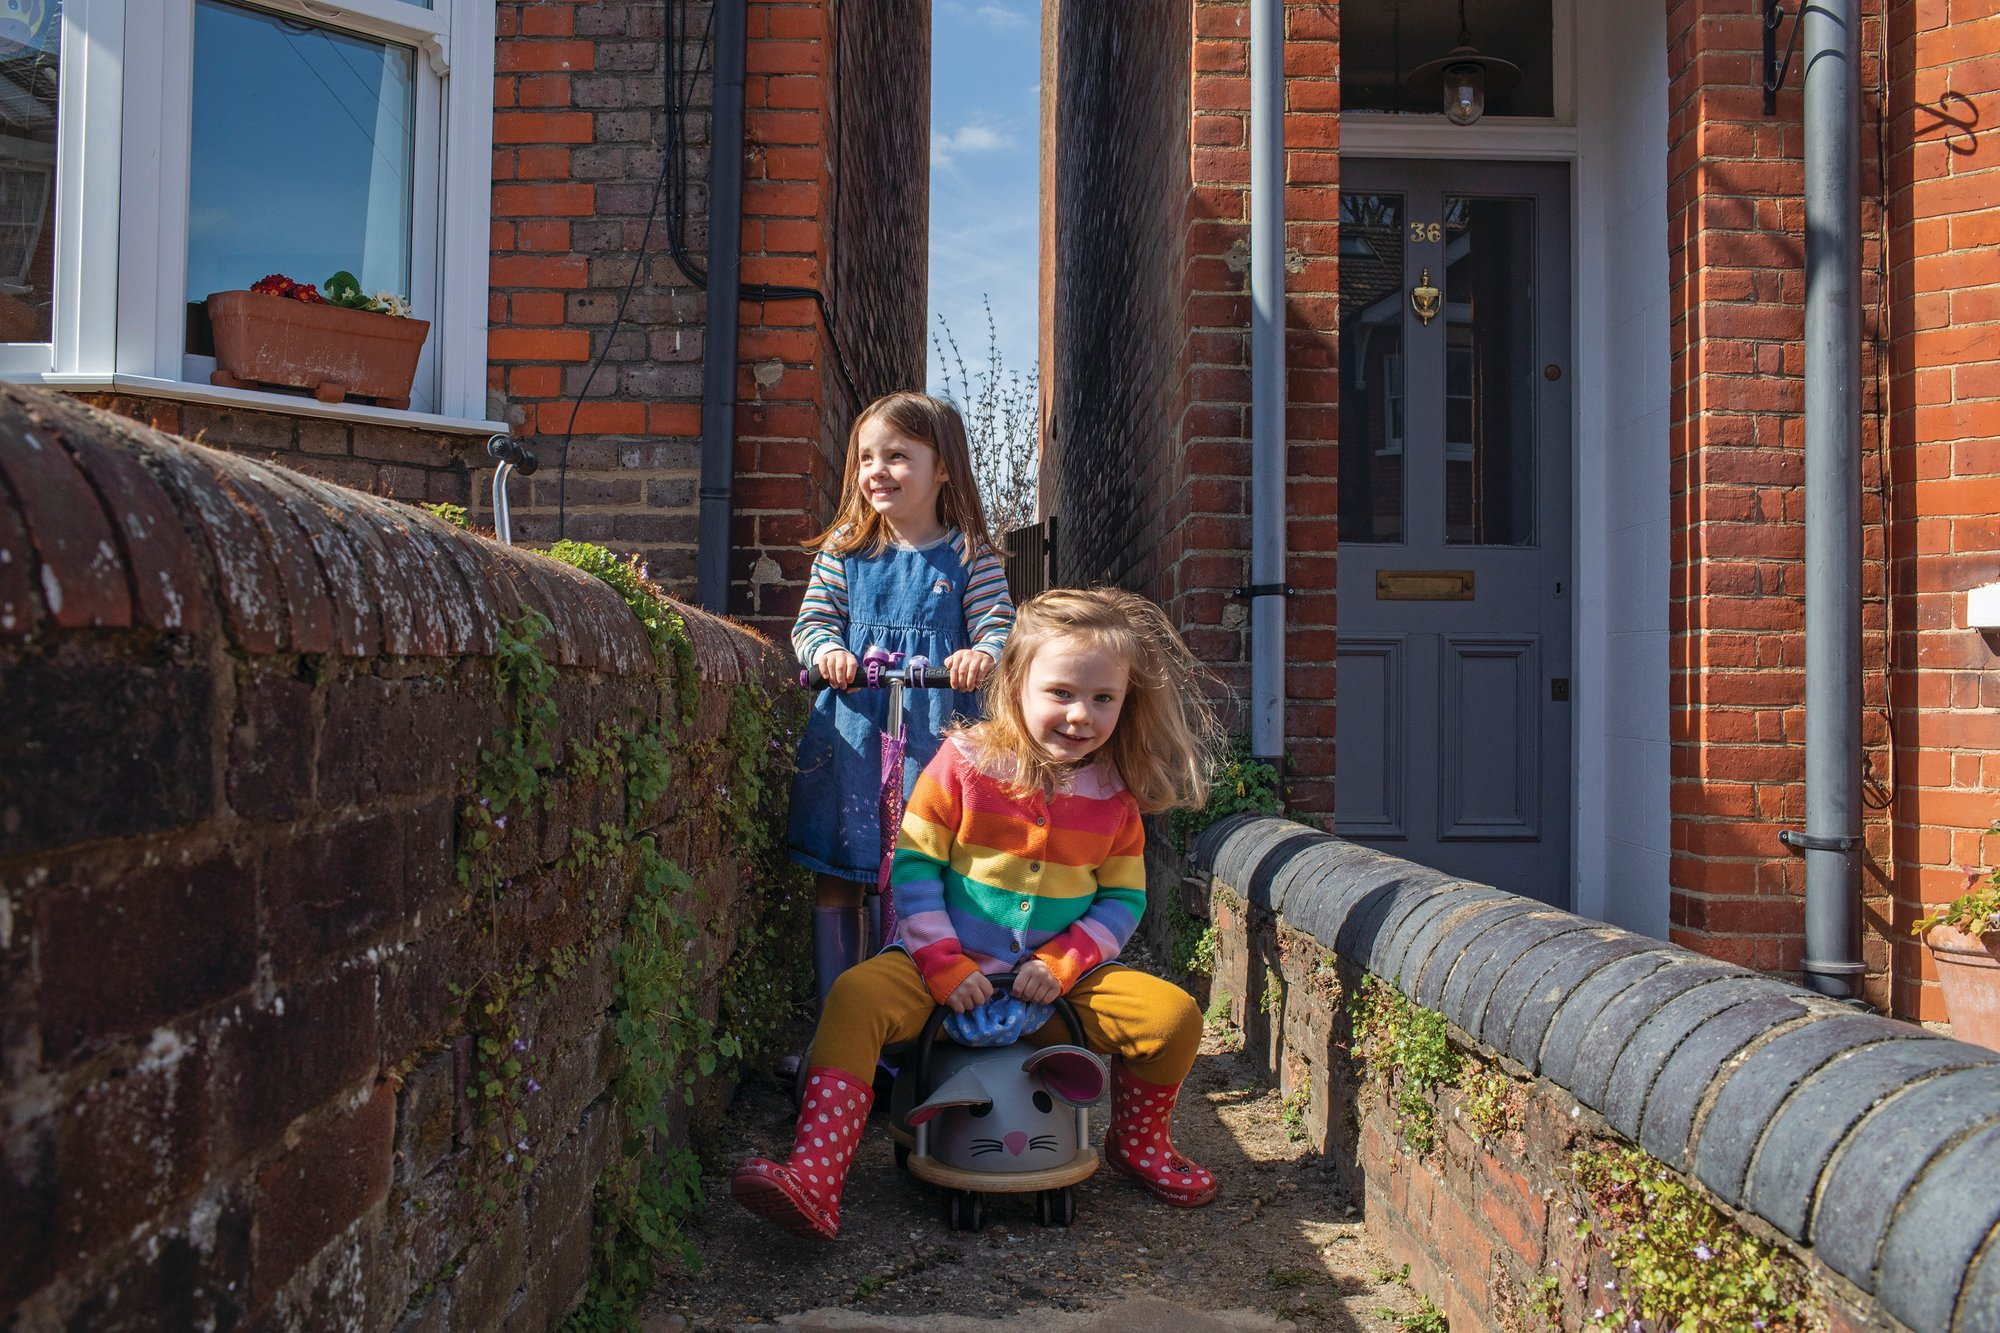 Astrid, 5, and Martha, 3, enjoy a scoot along their home's alley and a little freedom in Berkhamsted on April 7. Matt Leuw, their dad, recently recovered from the coronavirus and self isolated at home. Rachel, their mom, works as a program manager at the NHS Royal Free Hospital.